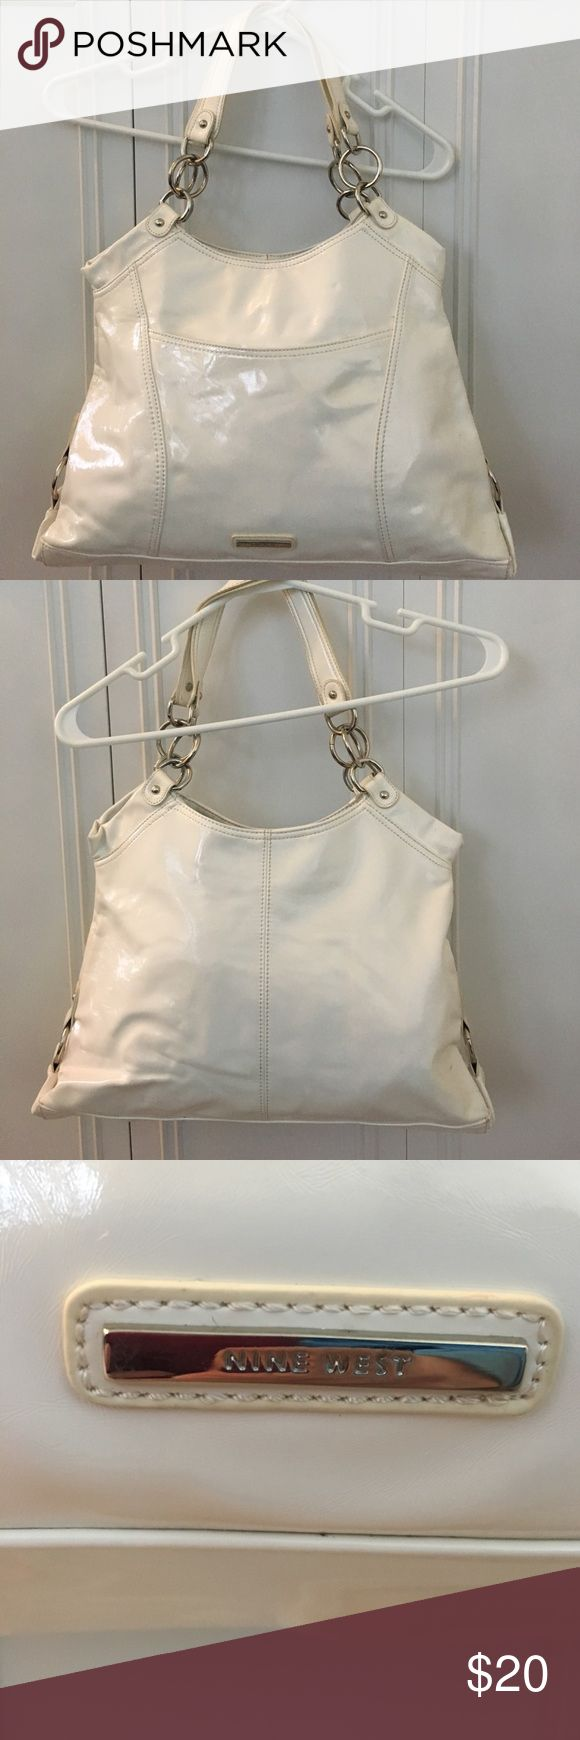 Nine West Purse Nice size Nine West purse. Shiny pleather material. Has small outside pocket. Snap closure. Nine West Bags Shoulder Bags